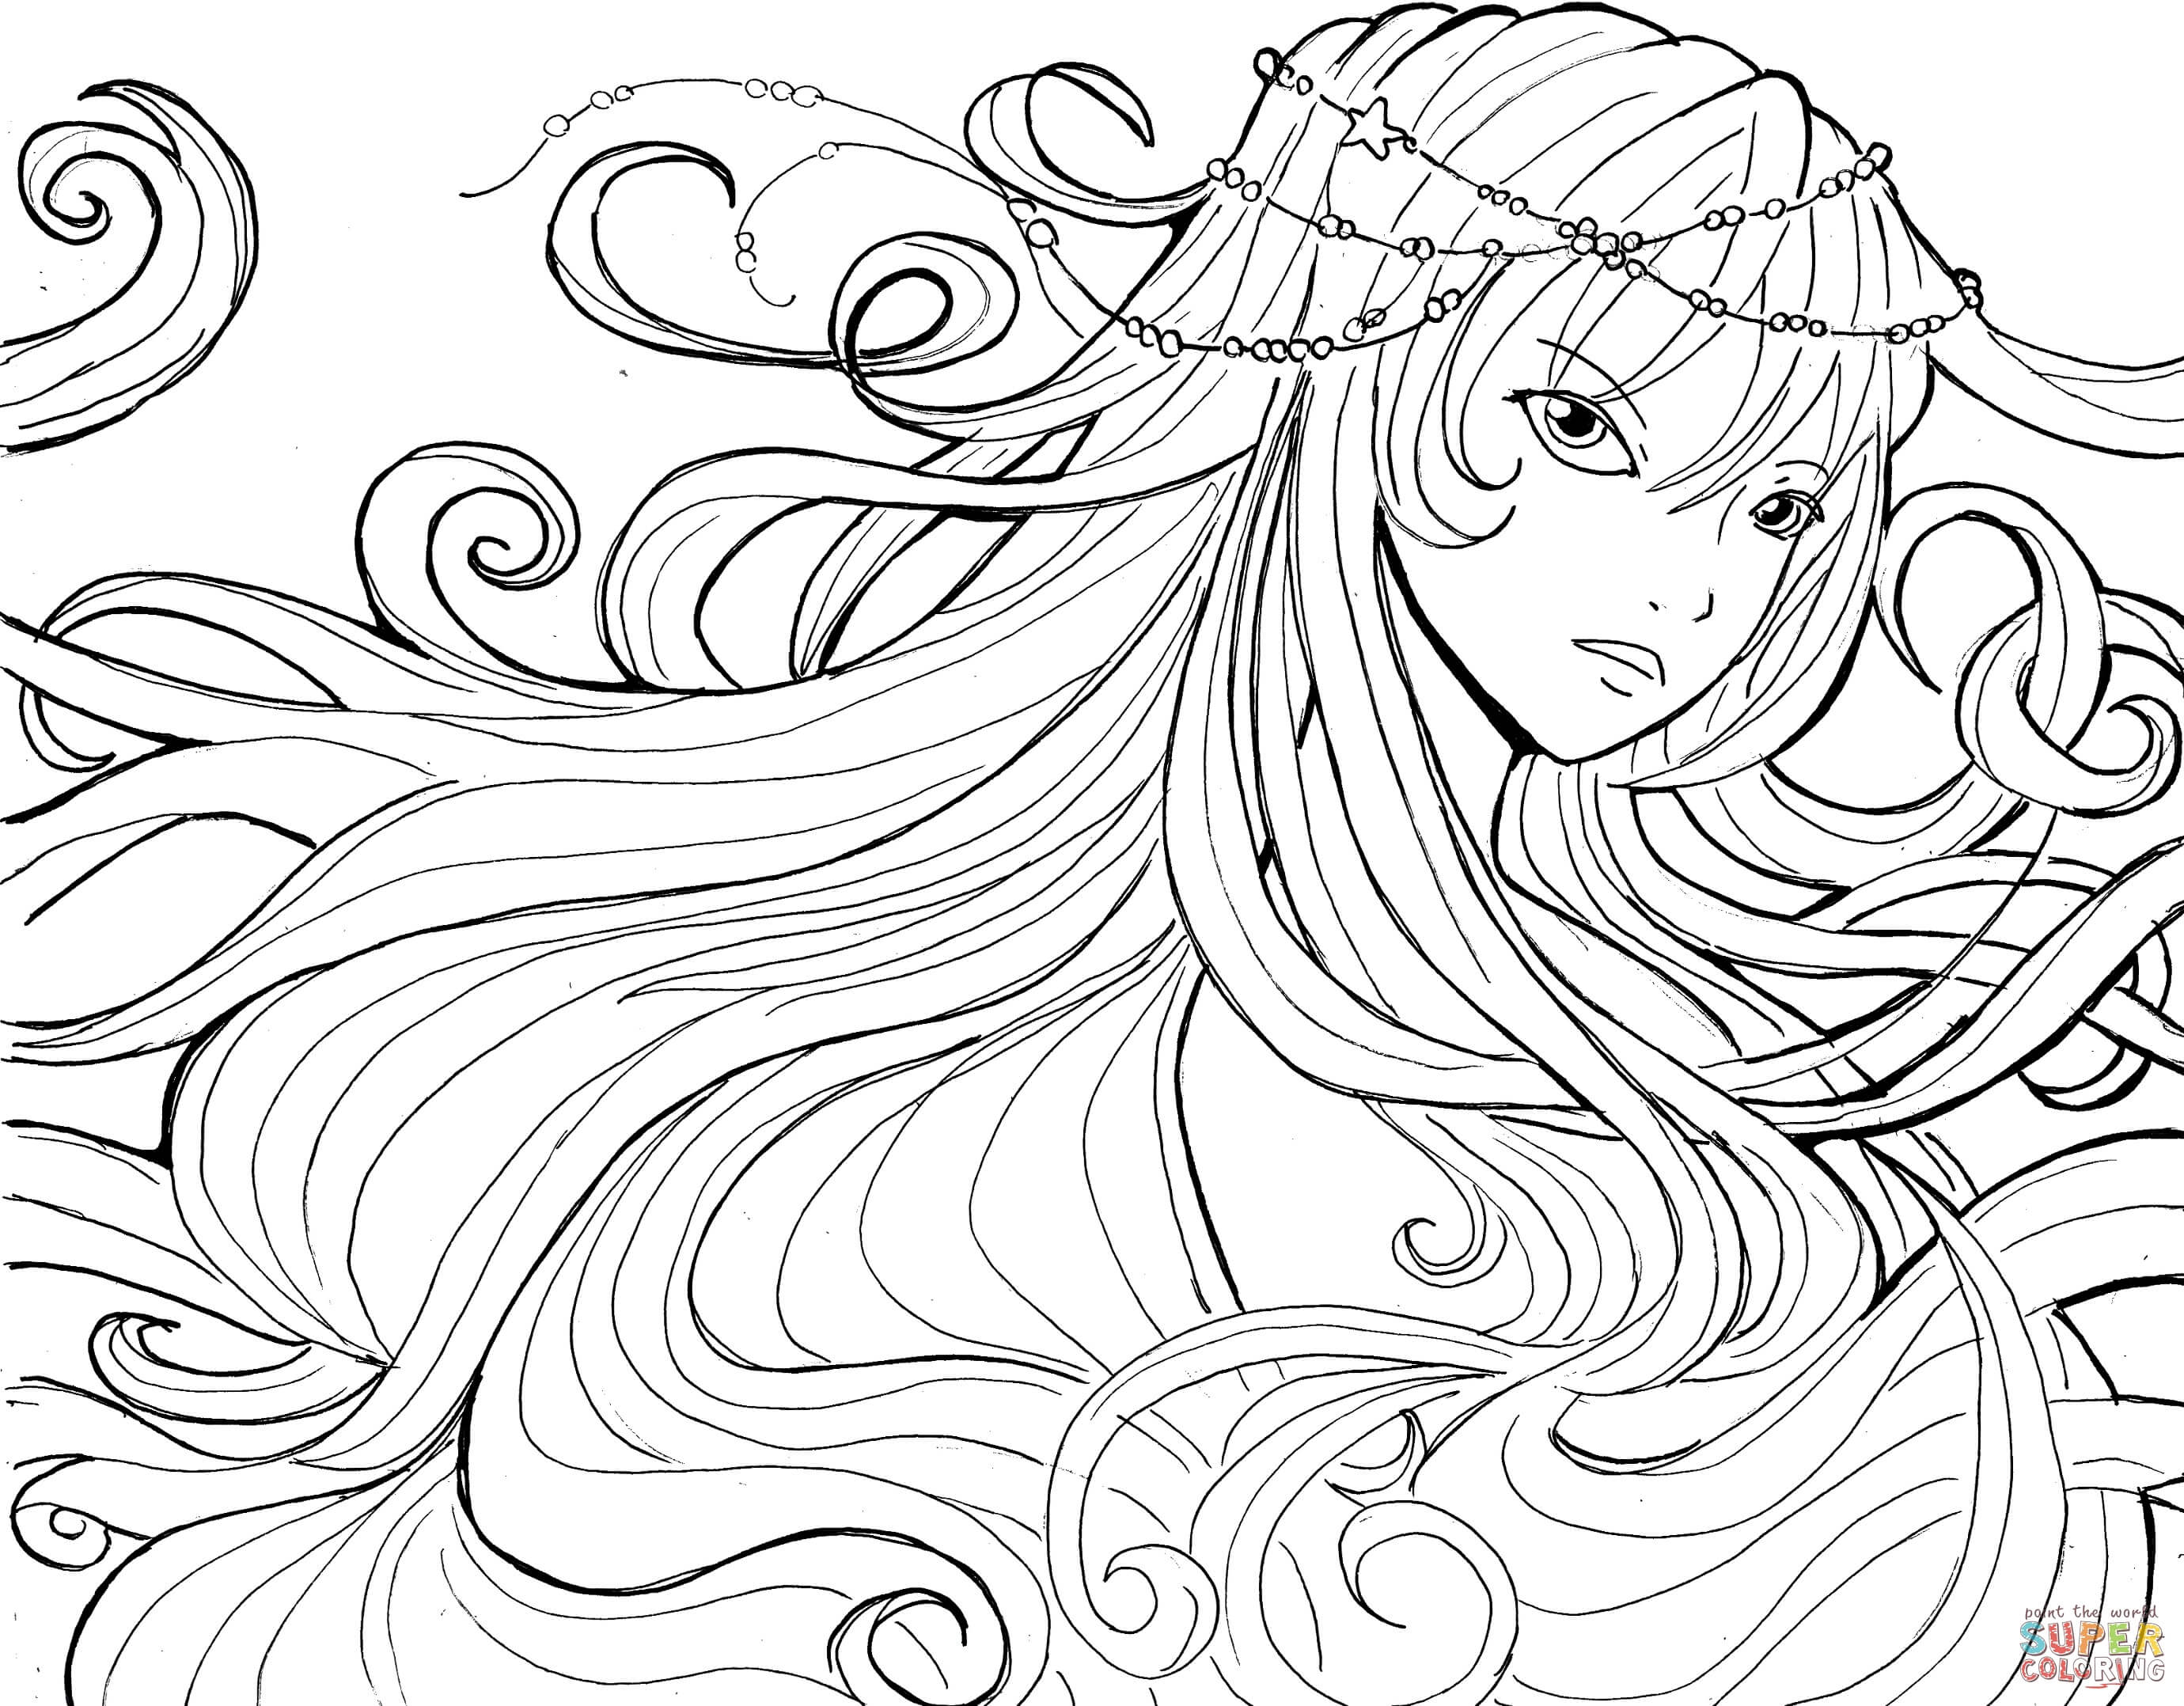 Anime Girls Coloring Pages Download Of Free Coloring Pages Printable New Kilari and Seiji Anime Coloring Printable